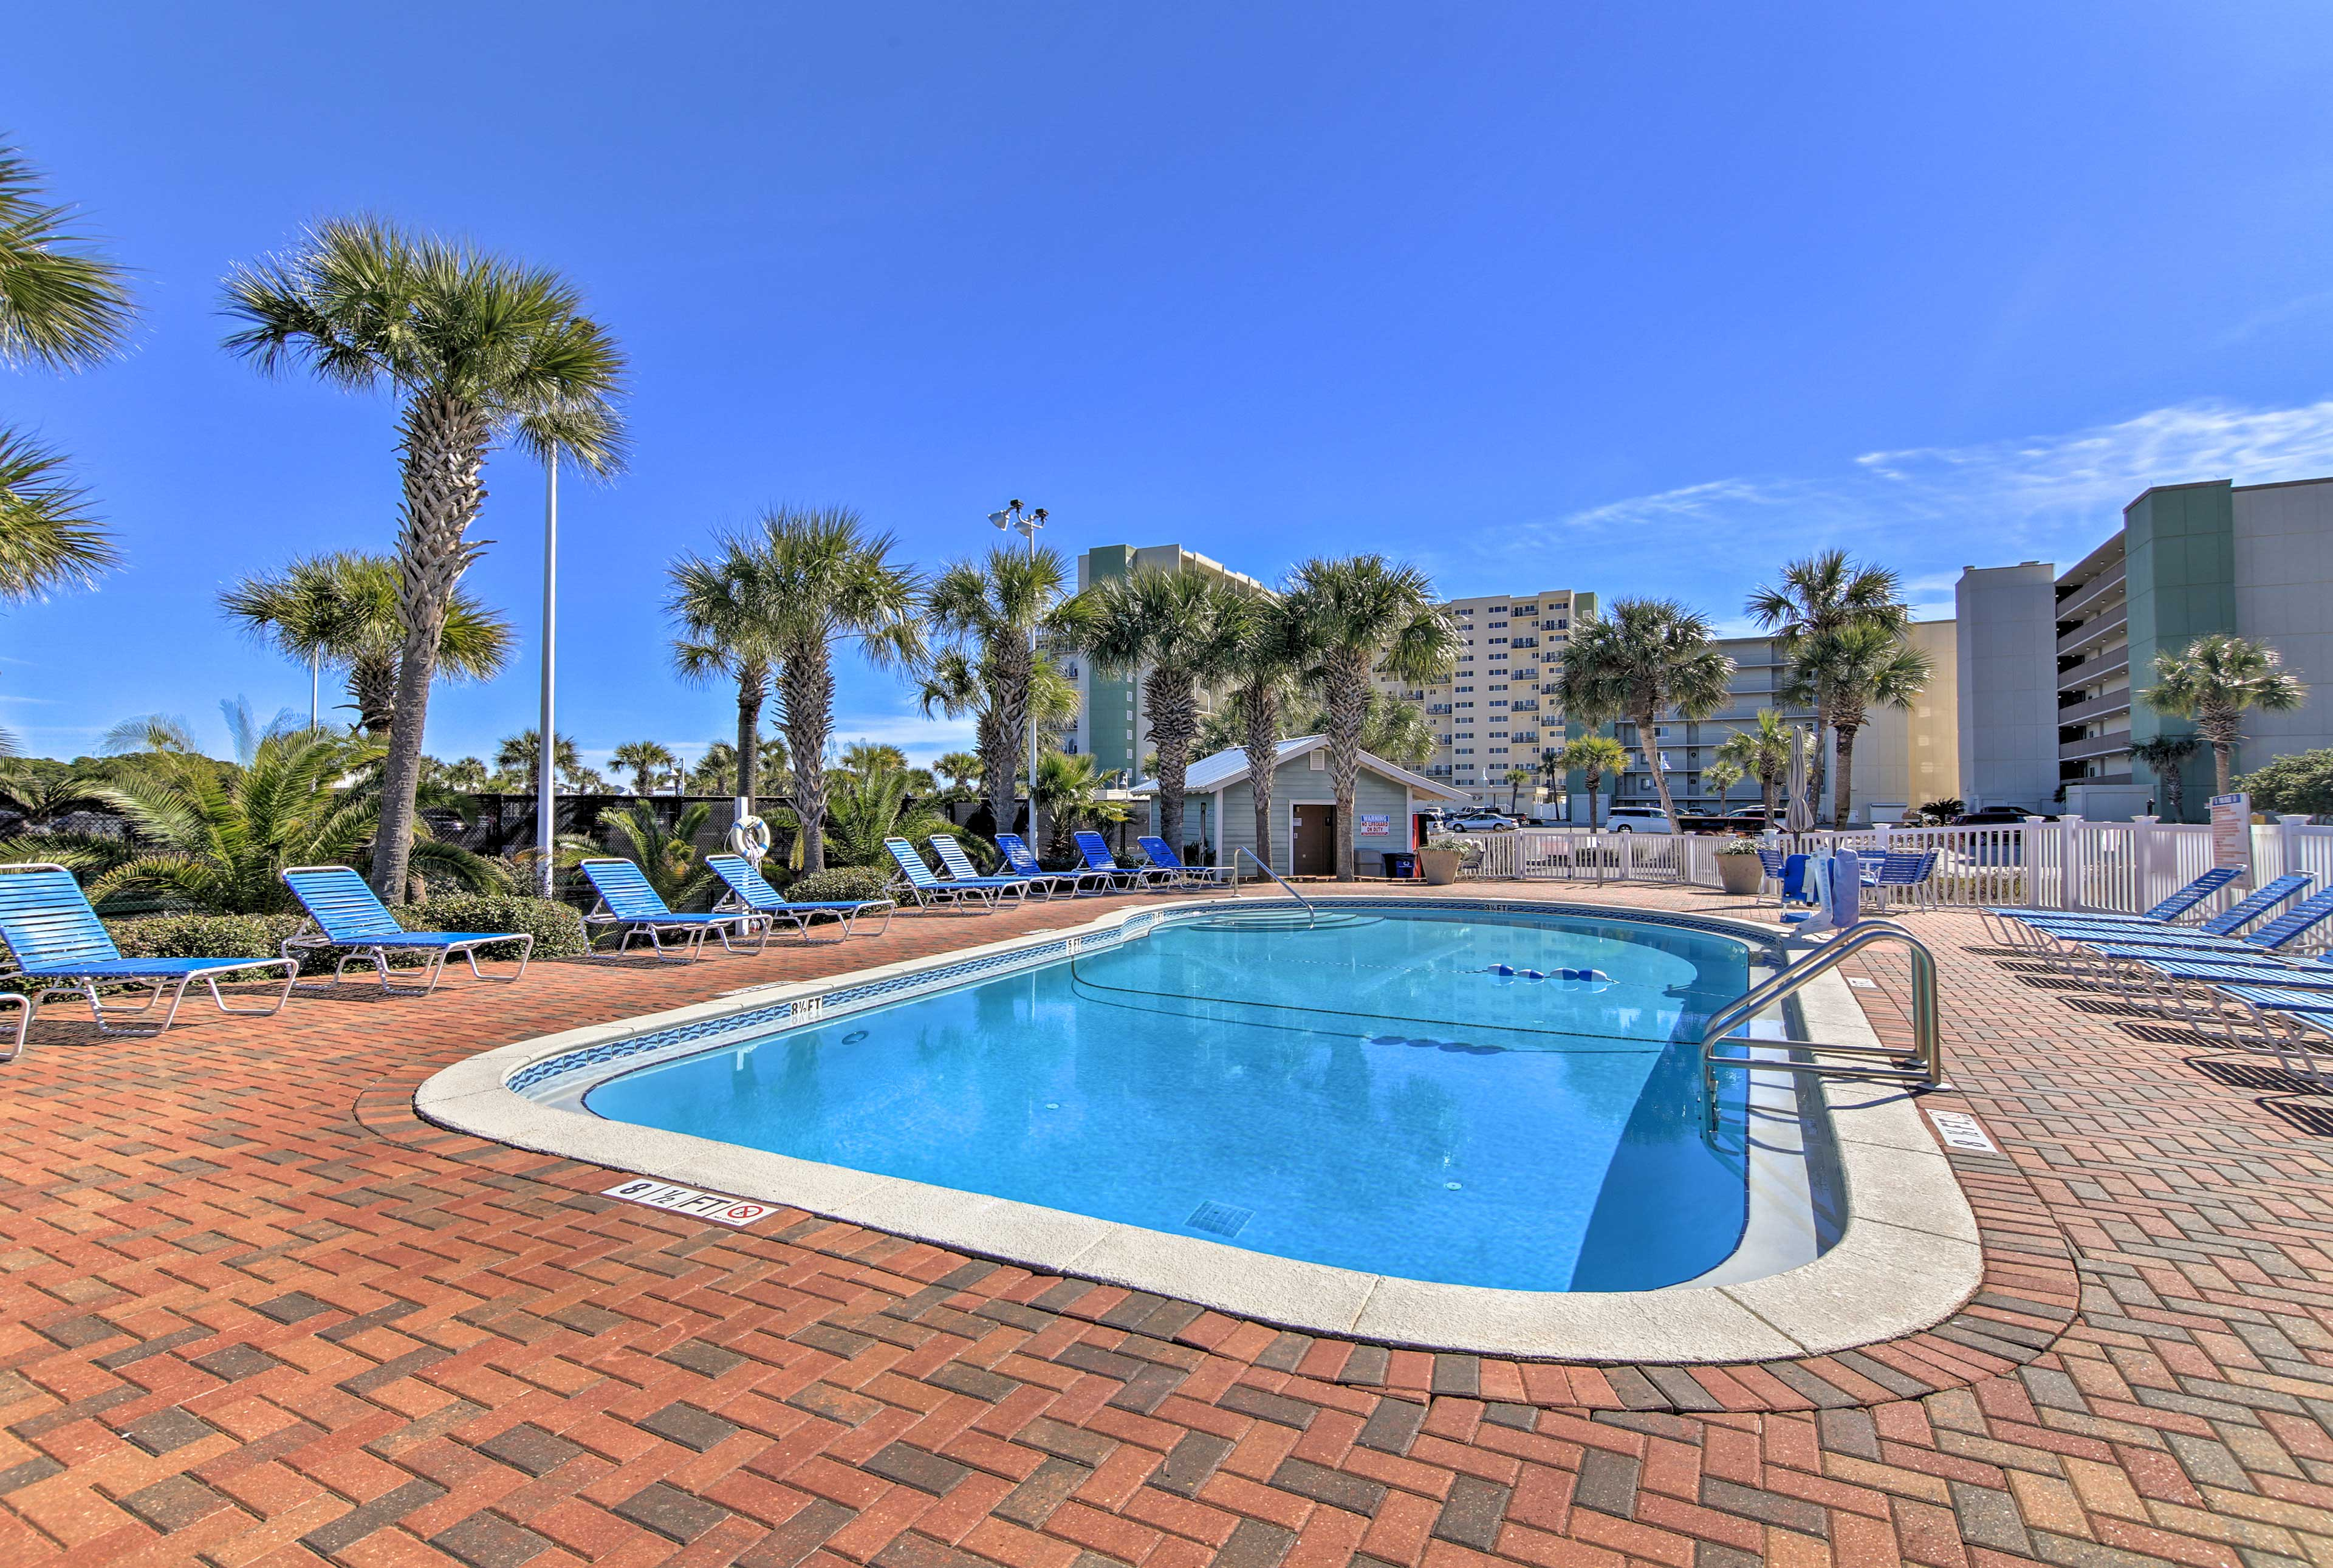 Spend leisurely days soaking up the sun by the pool!